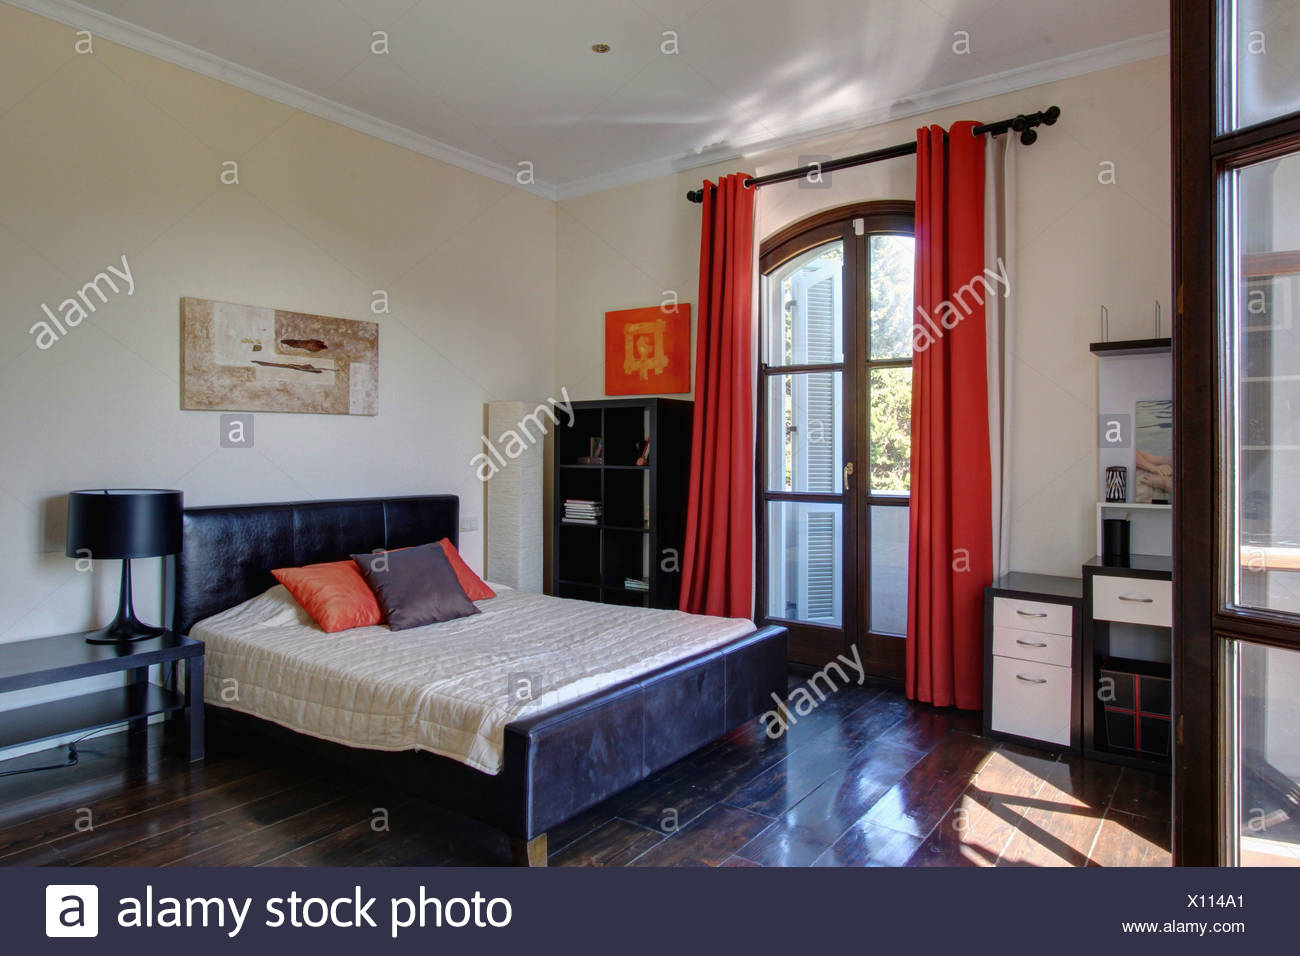 Red Curtains On French Windows In Spanish Bedroom With Black Leather  Upholstered Bed And Polished Dark Wood Floor